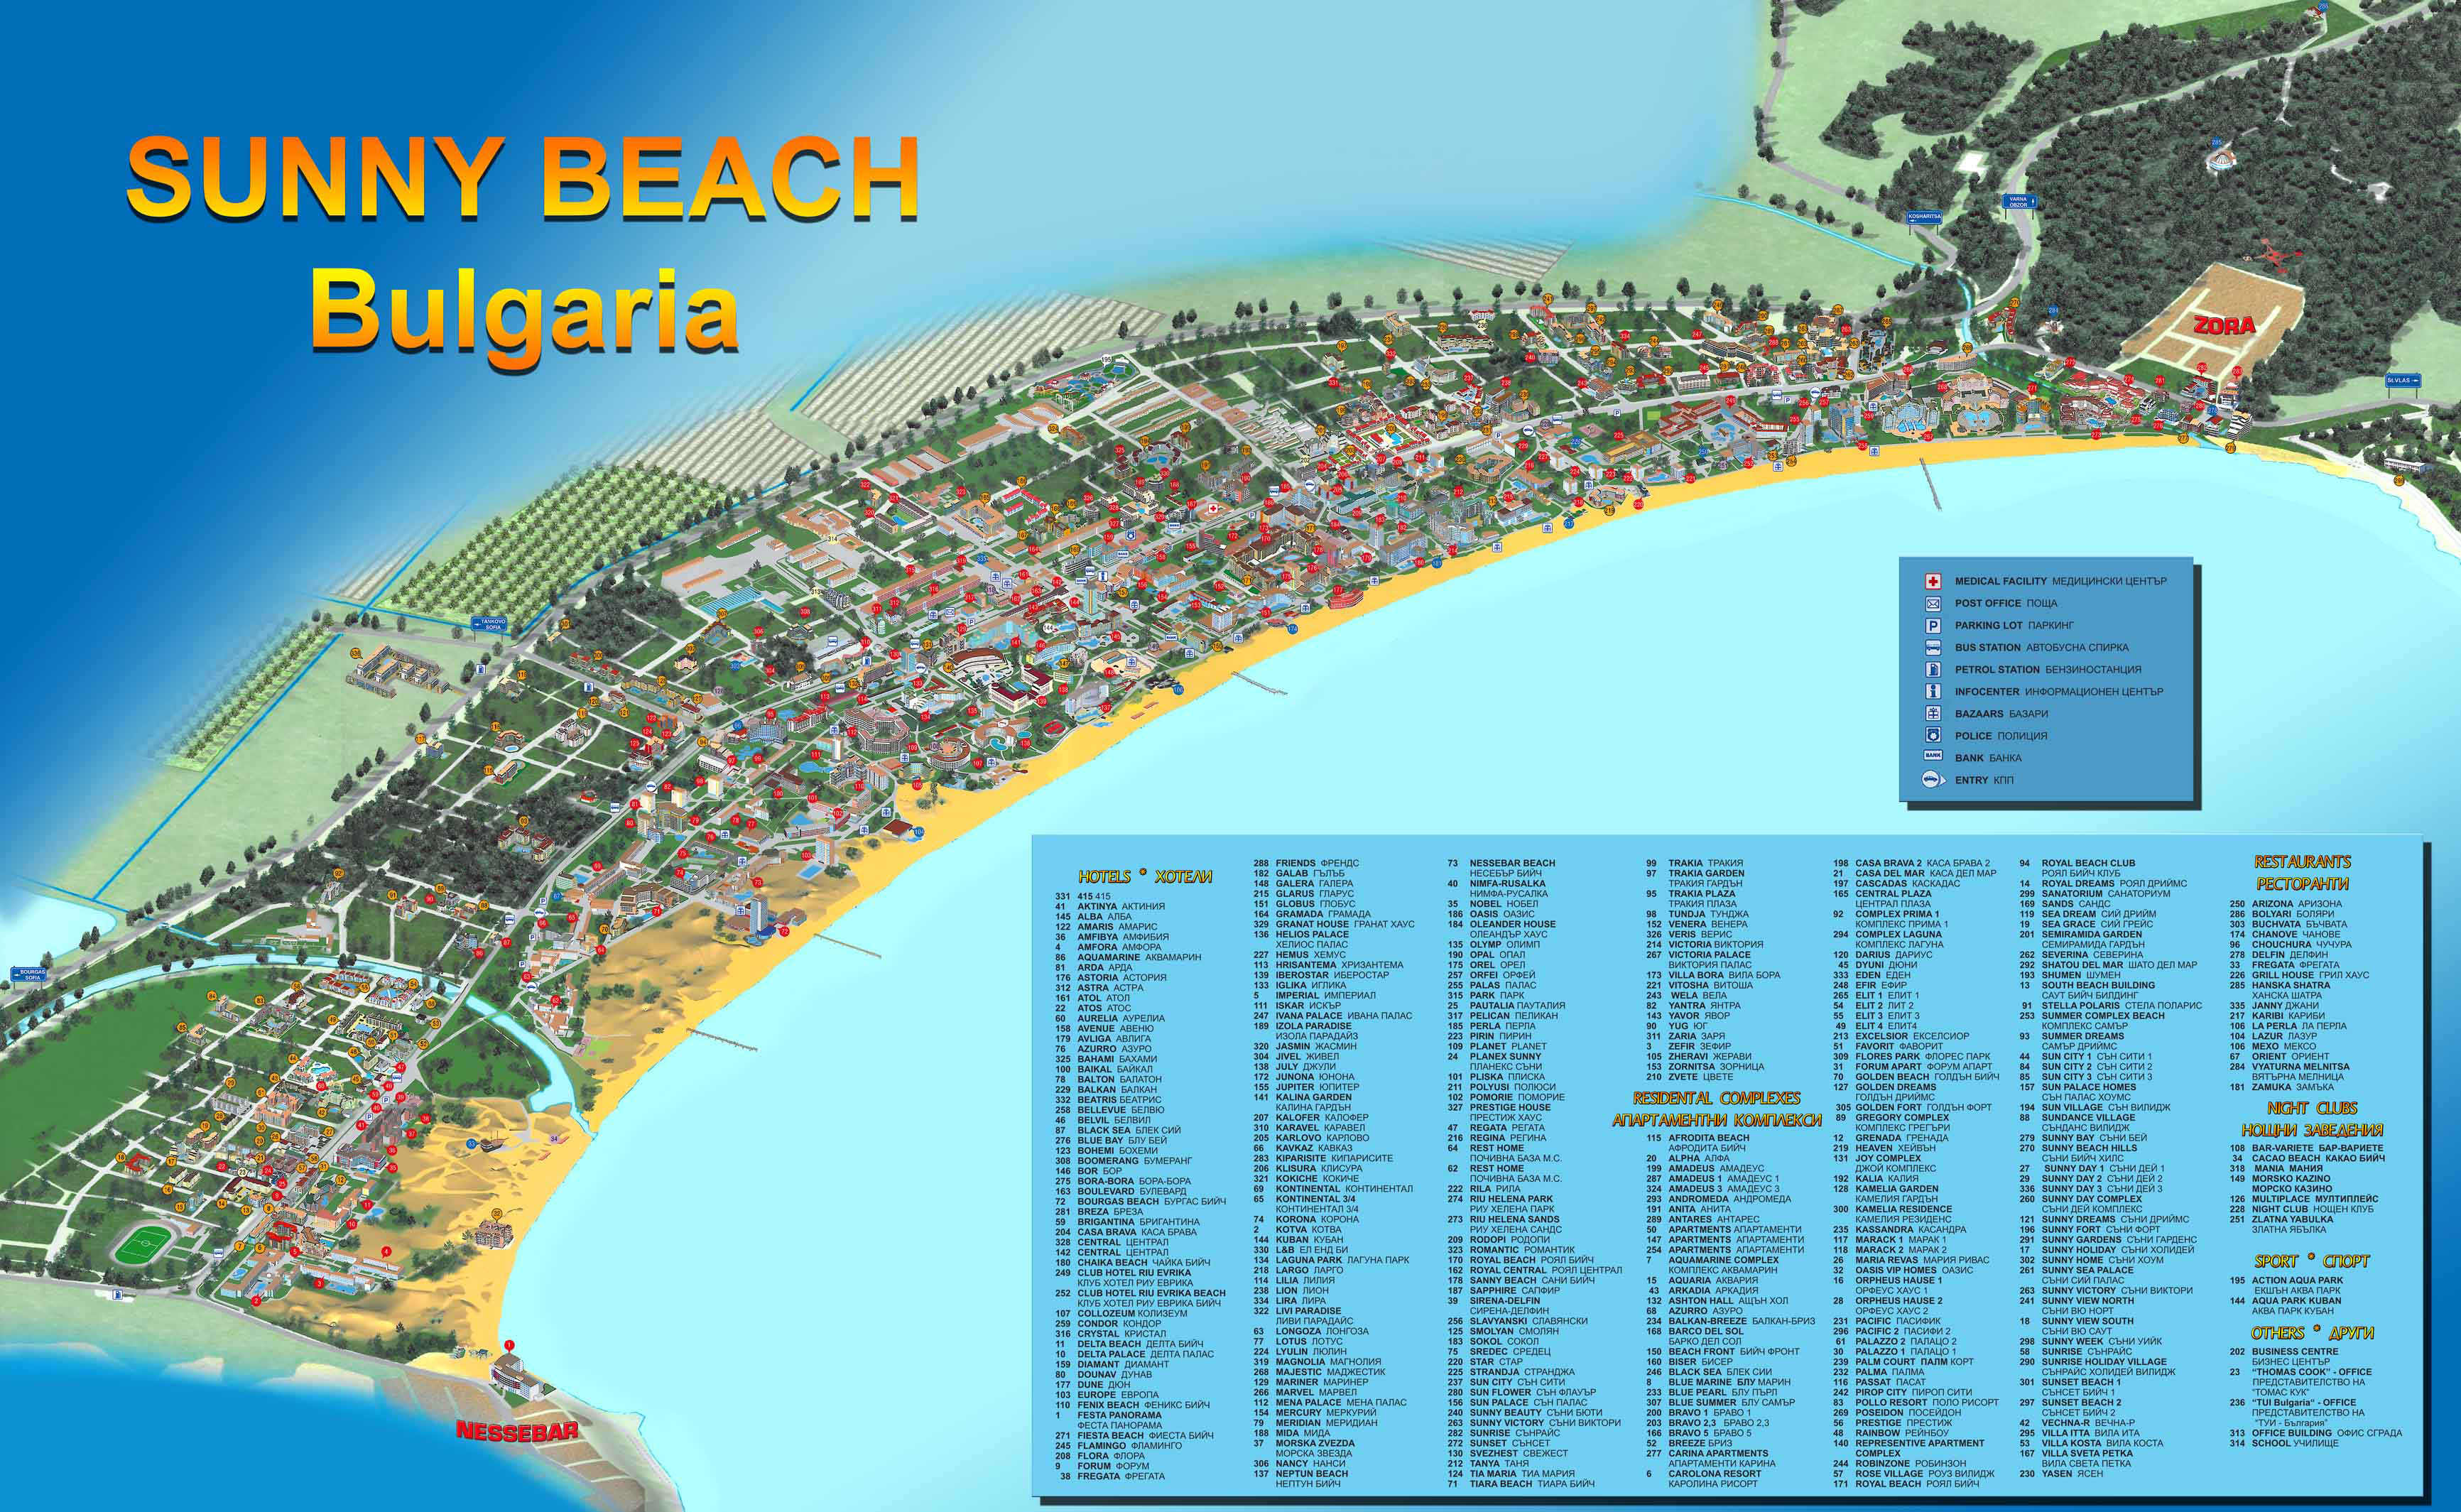 laguna beach hotels map with Sunny Beach Maps on Dusit Thani Pattaya furthermore Iberostar Cayo Coco together with Hotel Review G34297 D671239 Reviews Cedar Cove Resort Cottages Holmes Beach Anna Maria Island Florida besides Spiagge Fuerteventura in addition Things Not To Miss.